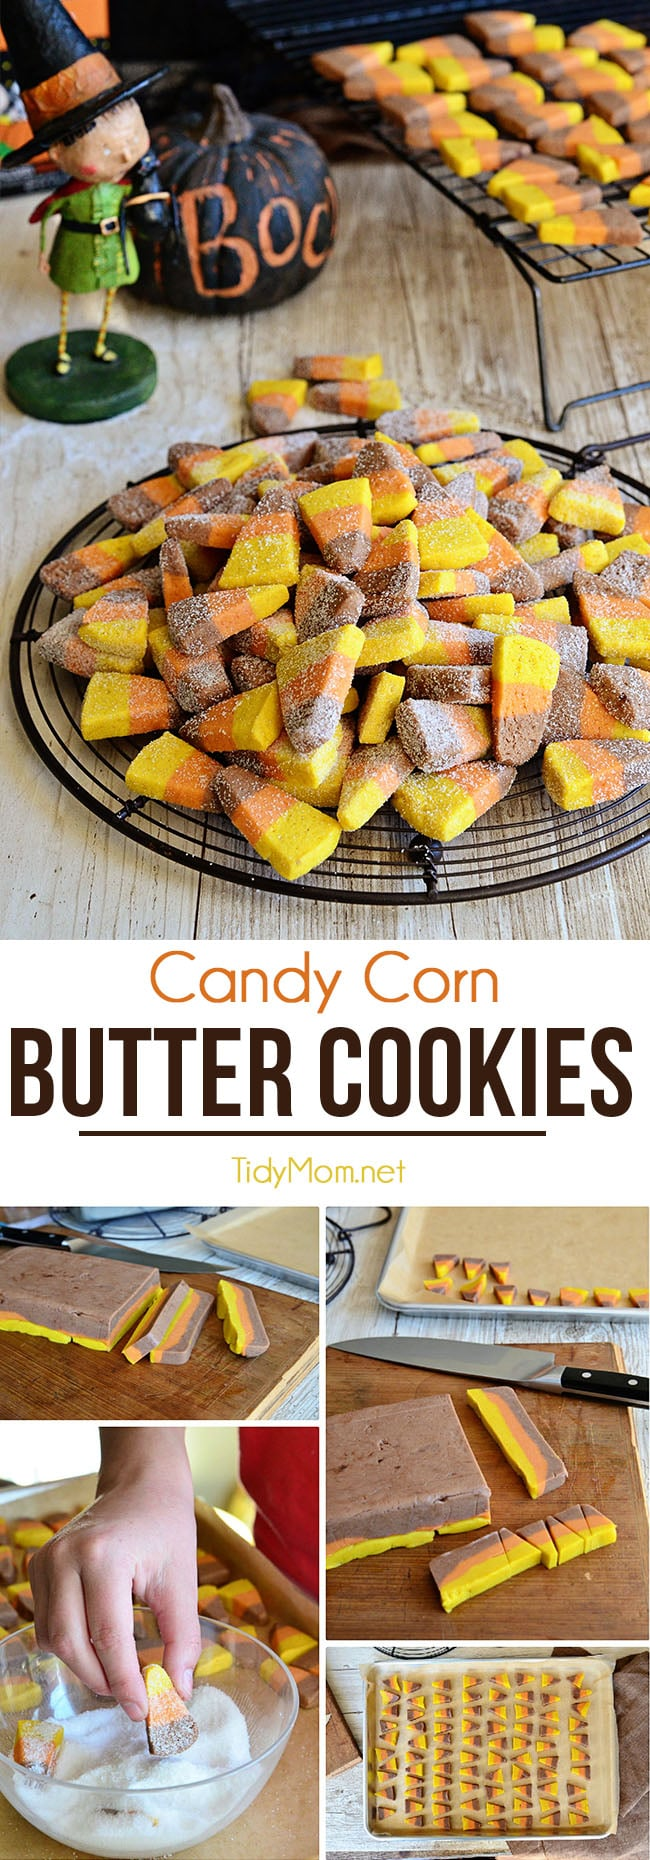 These candy corn shaped cookies come together in a flash…. no rolling or cookie cutters involved!Candy Corn Butter Cookie recipe and tutorial at TidyMom.net #cookies #candycorn #fall #cookierecipe